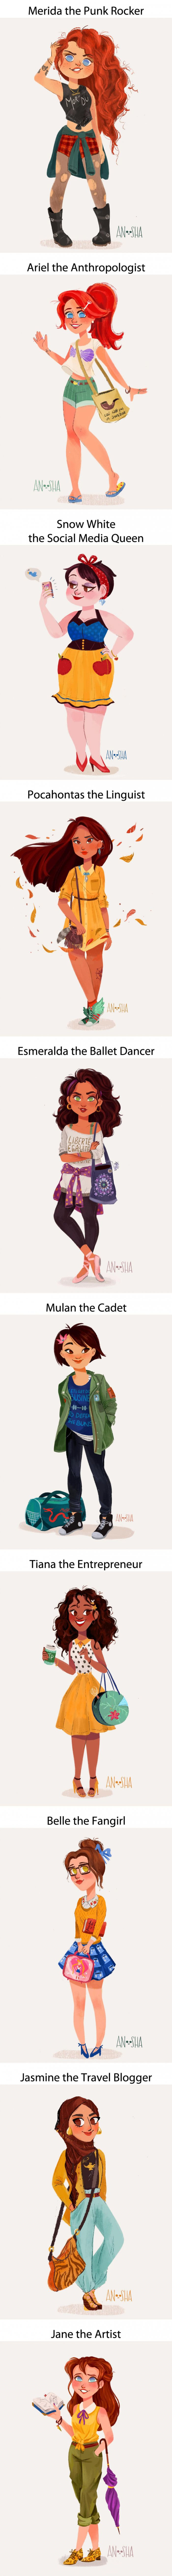 If Disney Princess Lived In The 21st Century As Modern Day Girls (by Anoosha Syed) - 9GAG